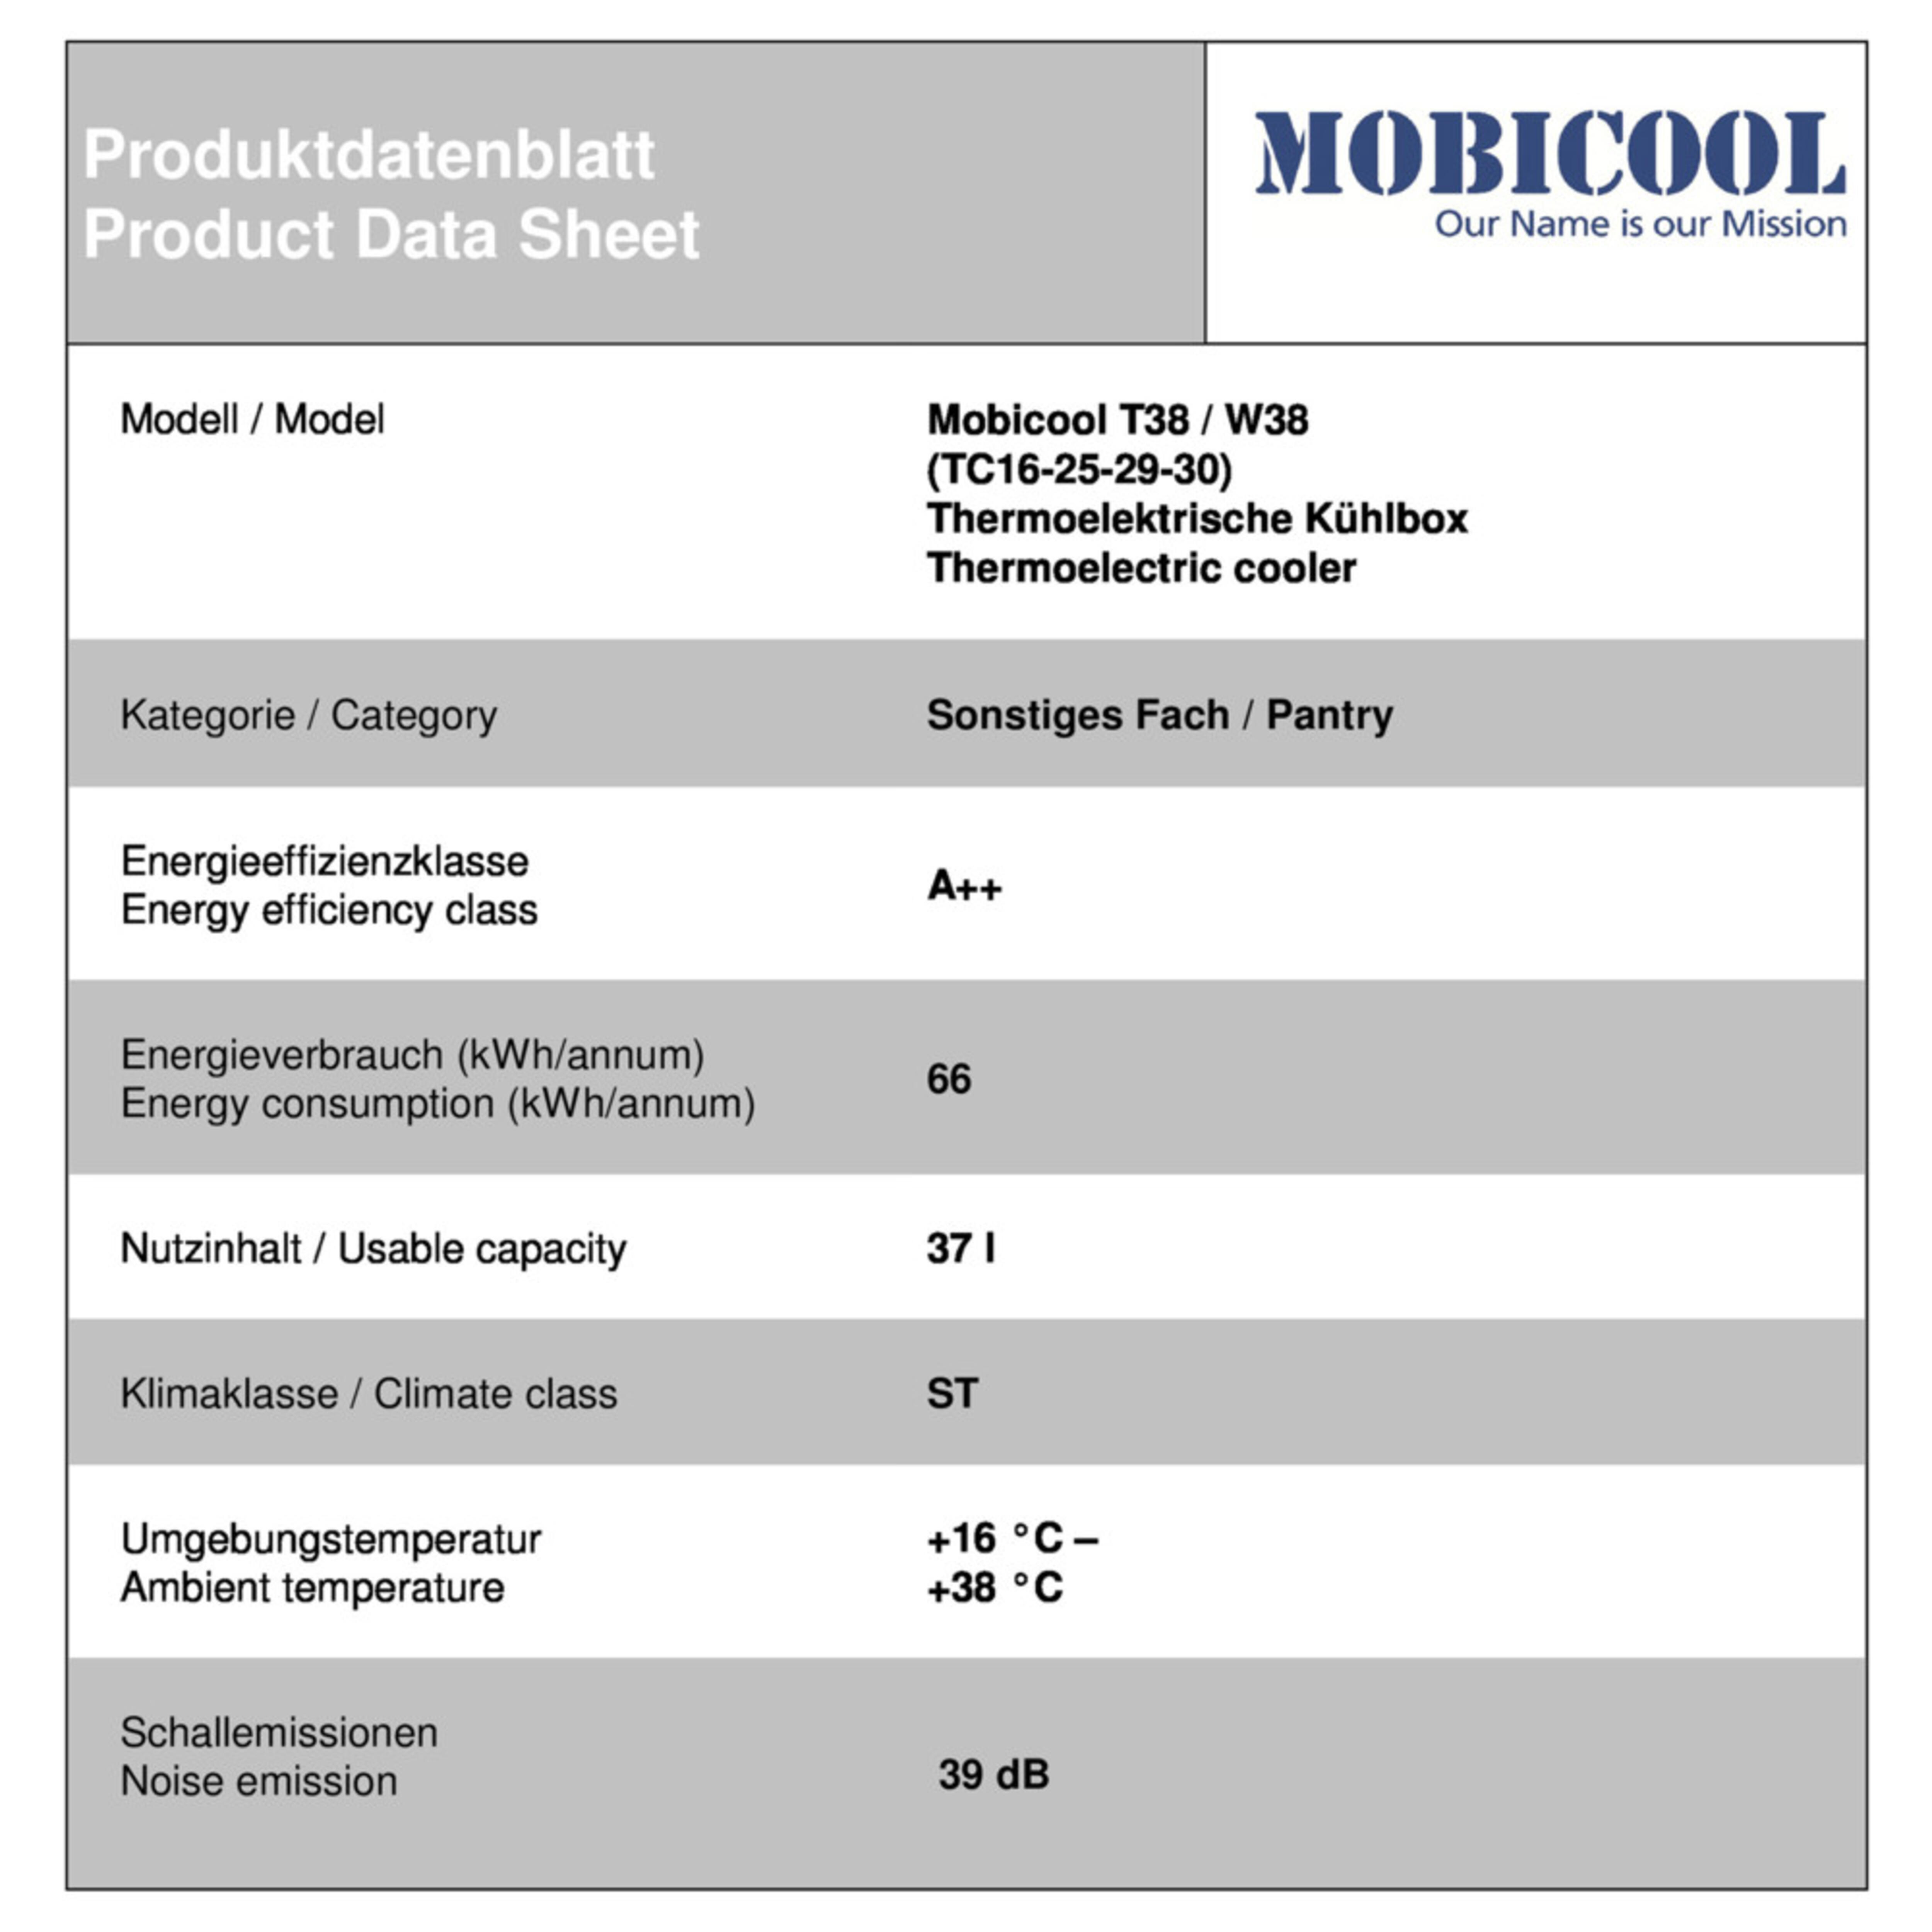 Mobicool W38 AC/DC Energy data sheet